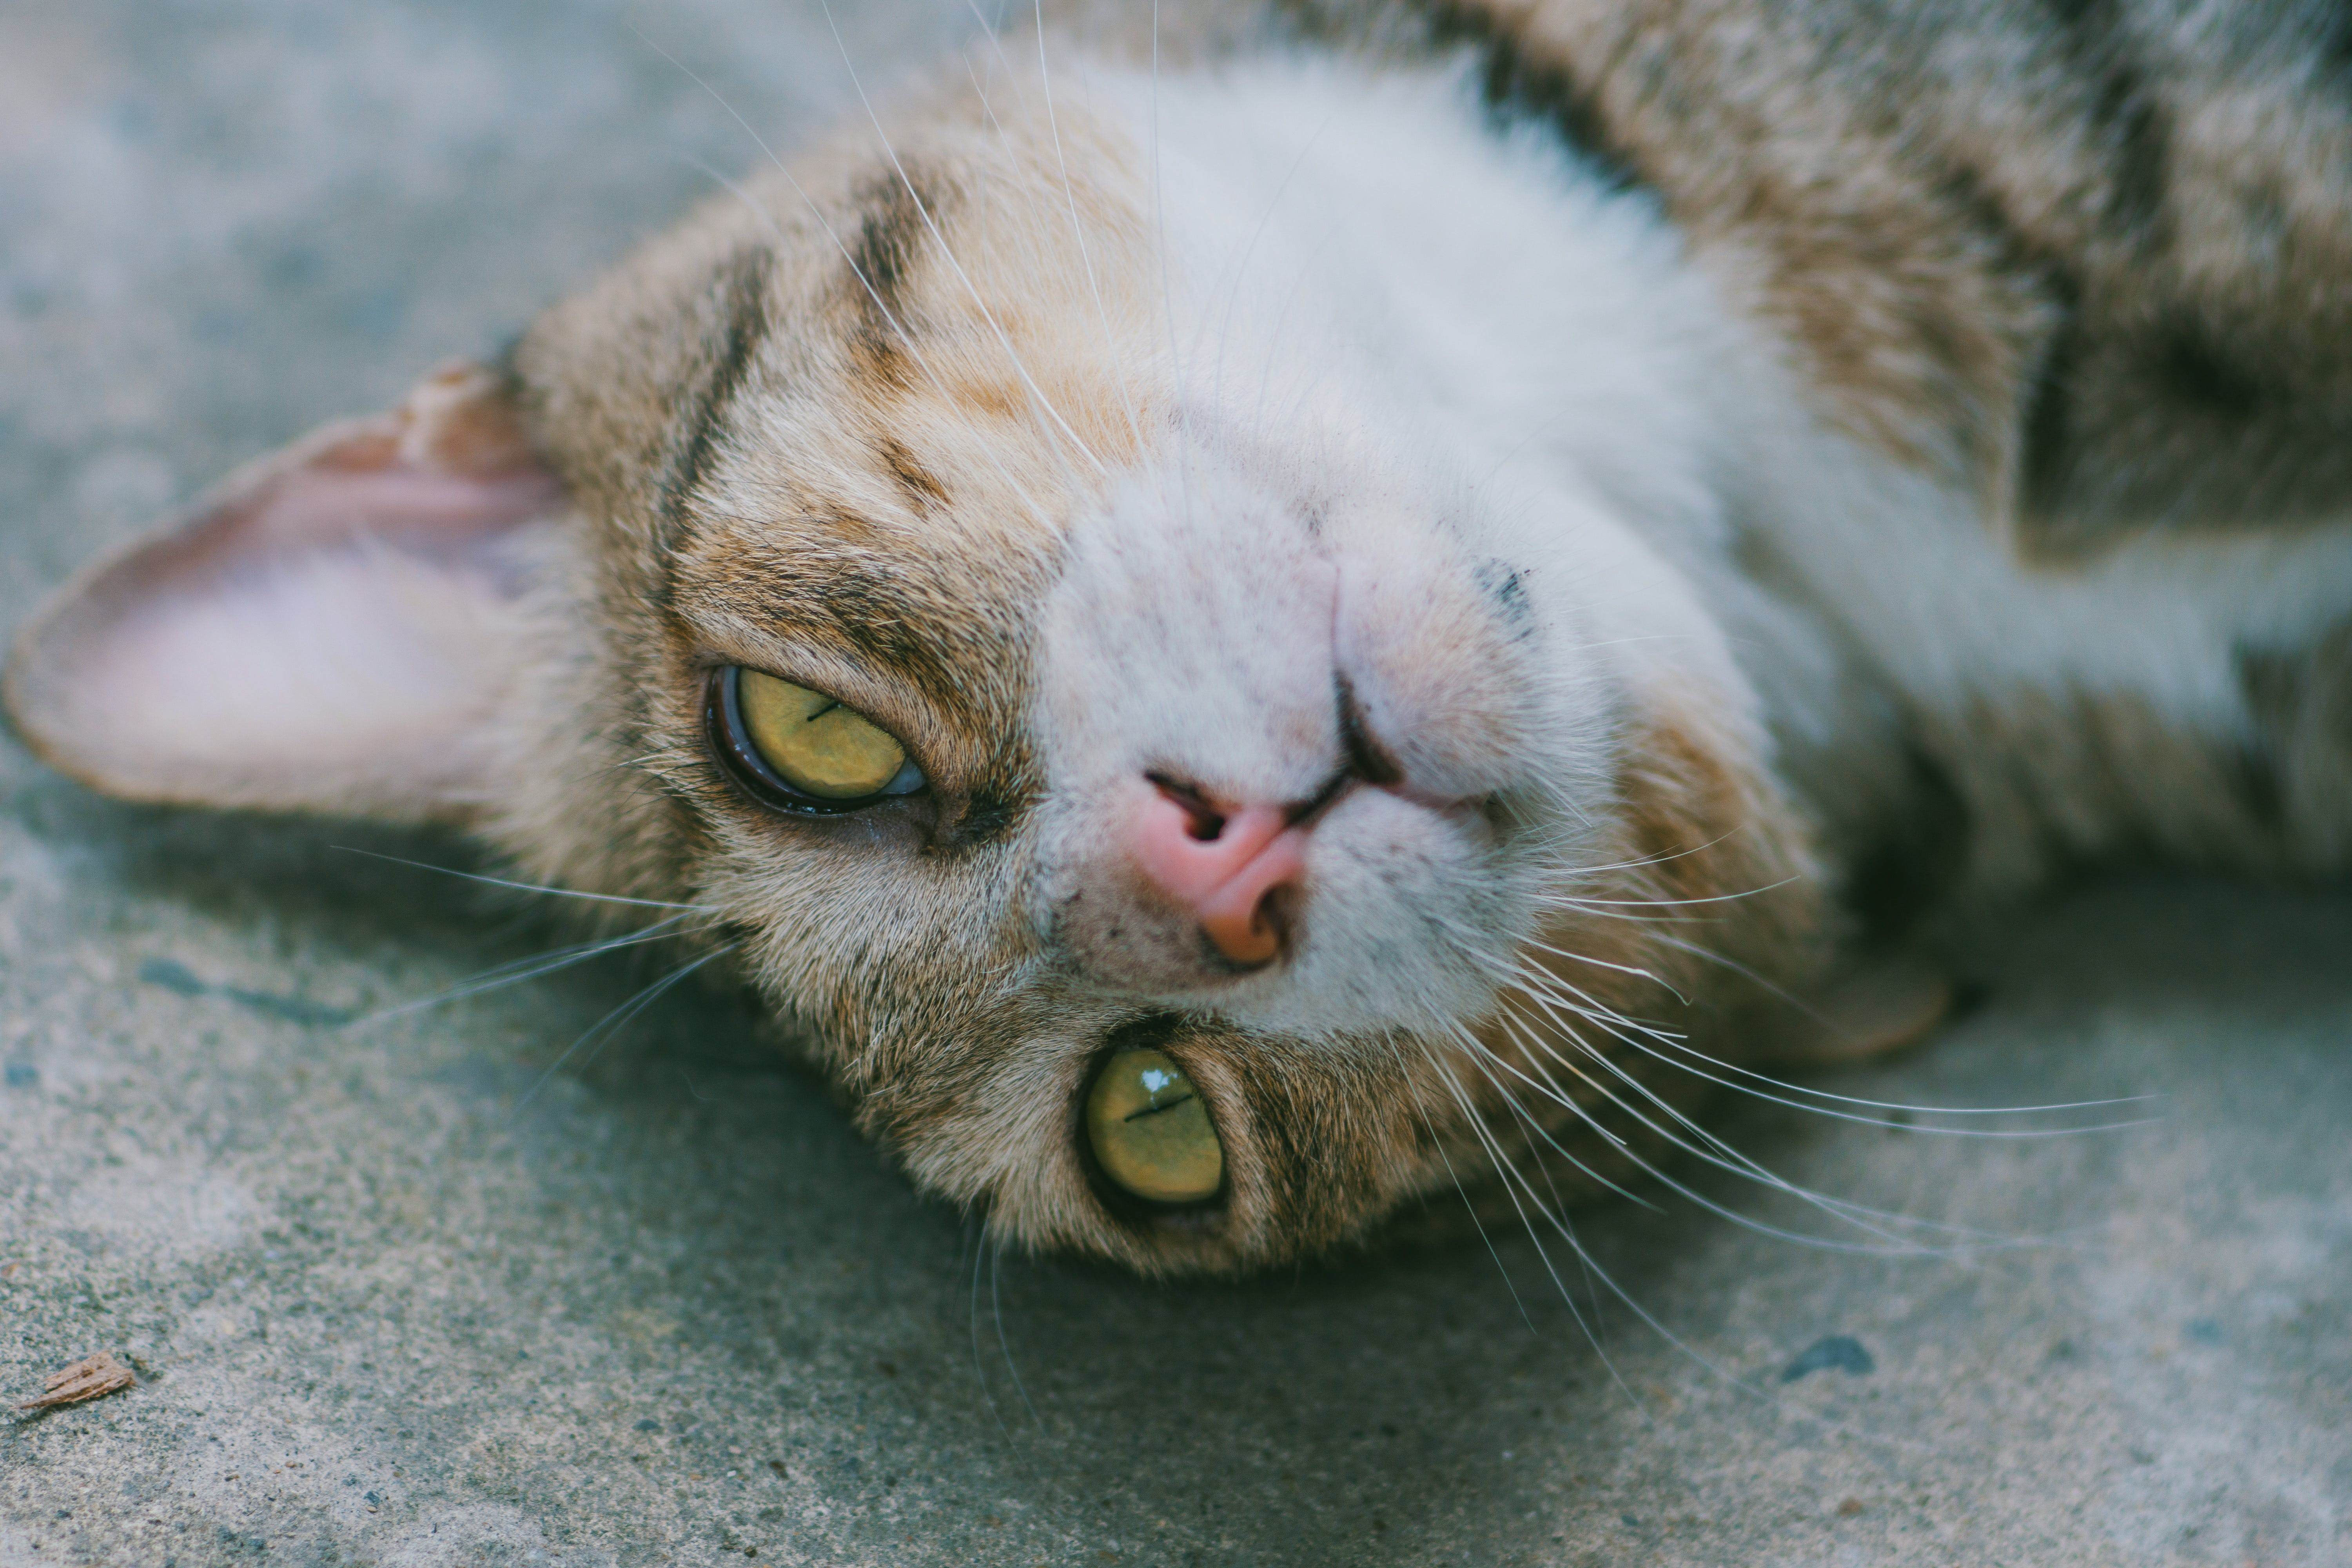 Close-up of brown Cat Lying on Grey Pavement